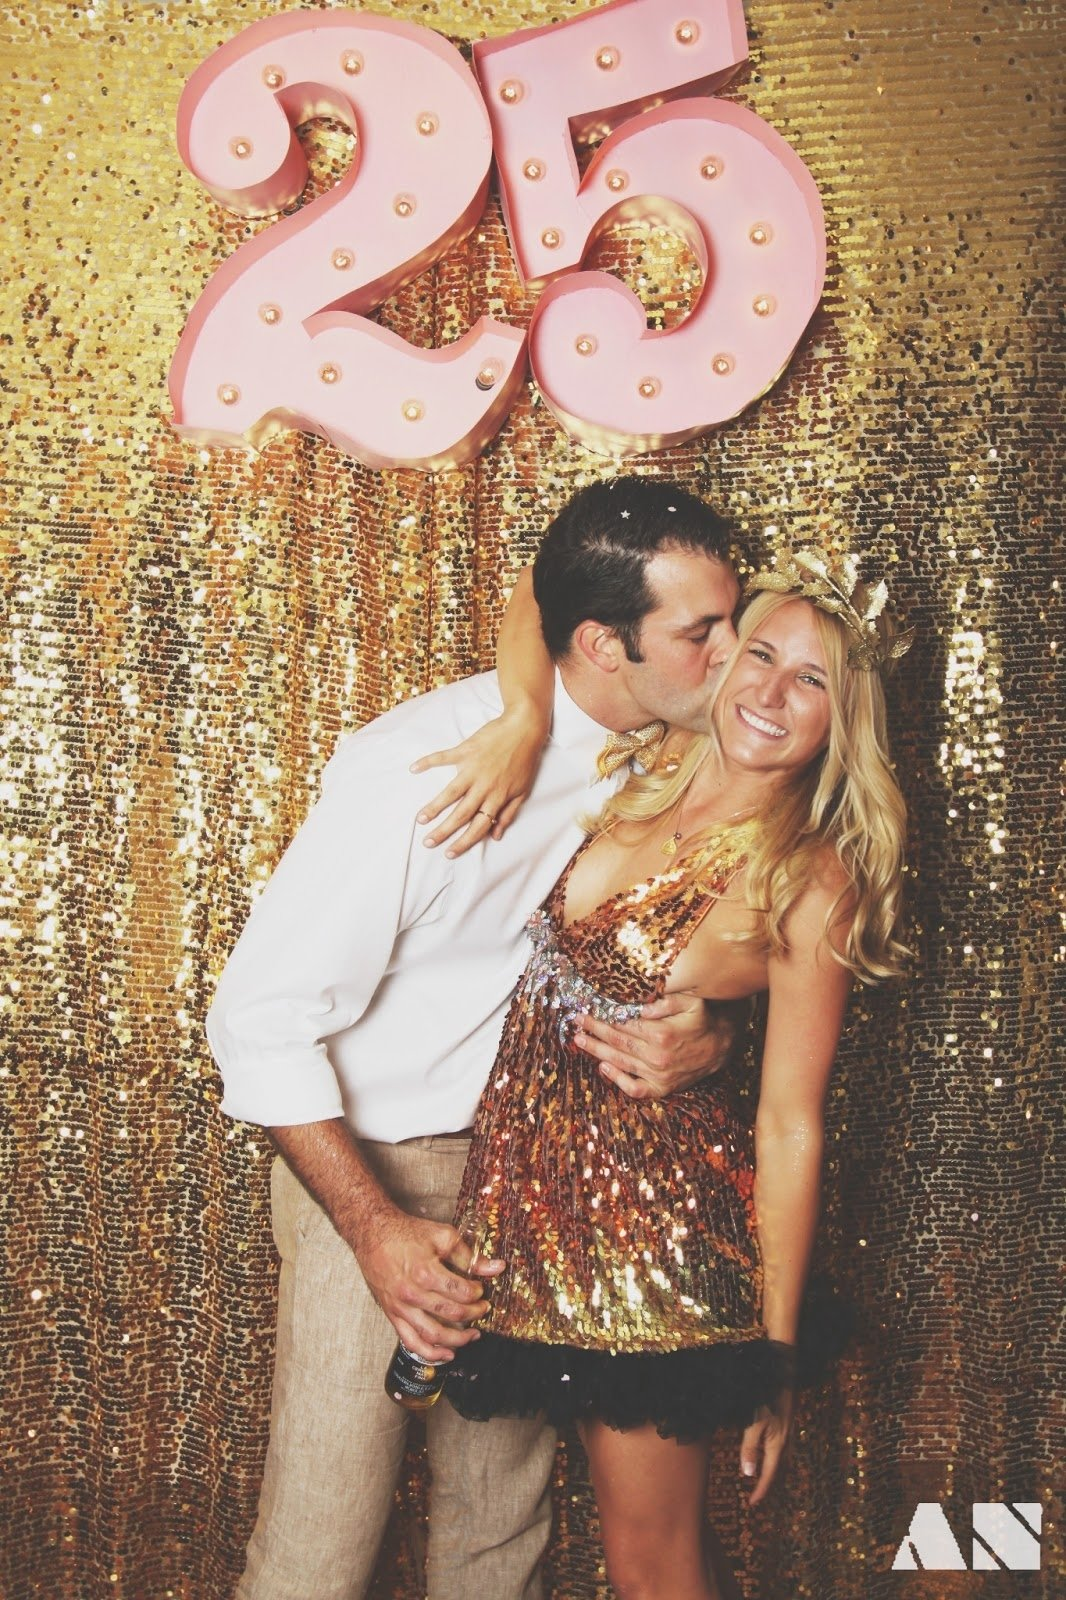 10 Spectacular Ideas For 25Th Birthday Party chloe moore photography the blog glitterfest a glittery golden 2020